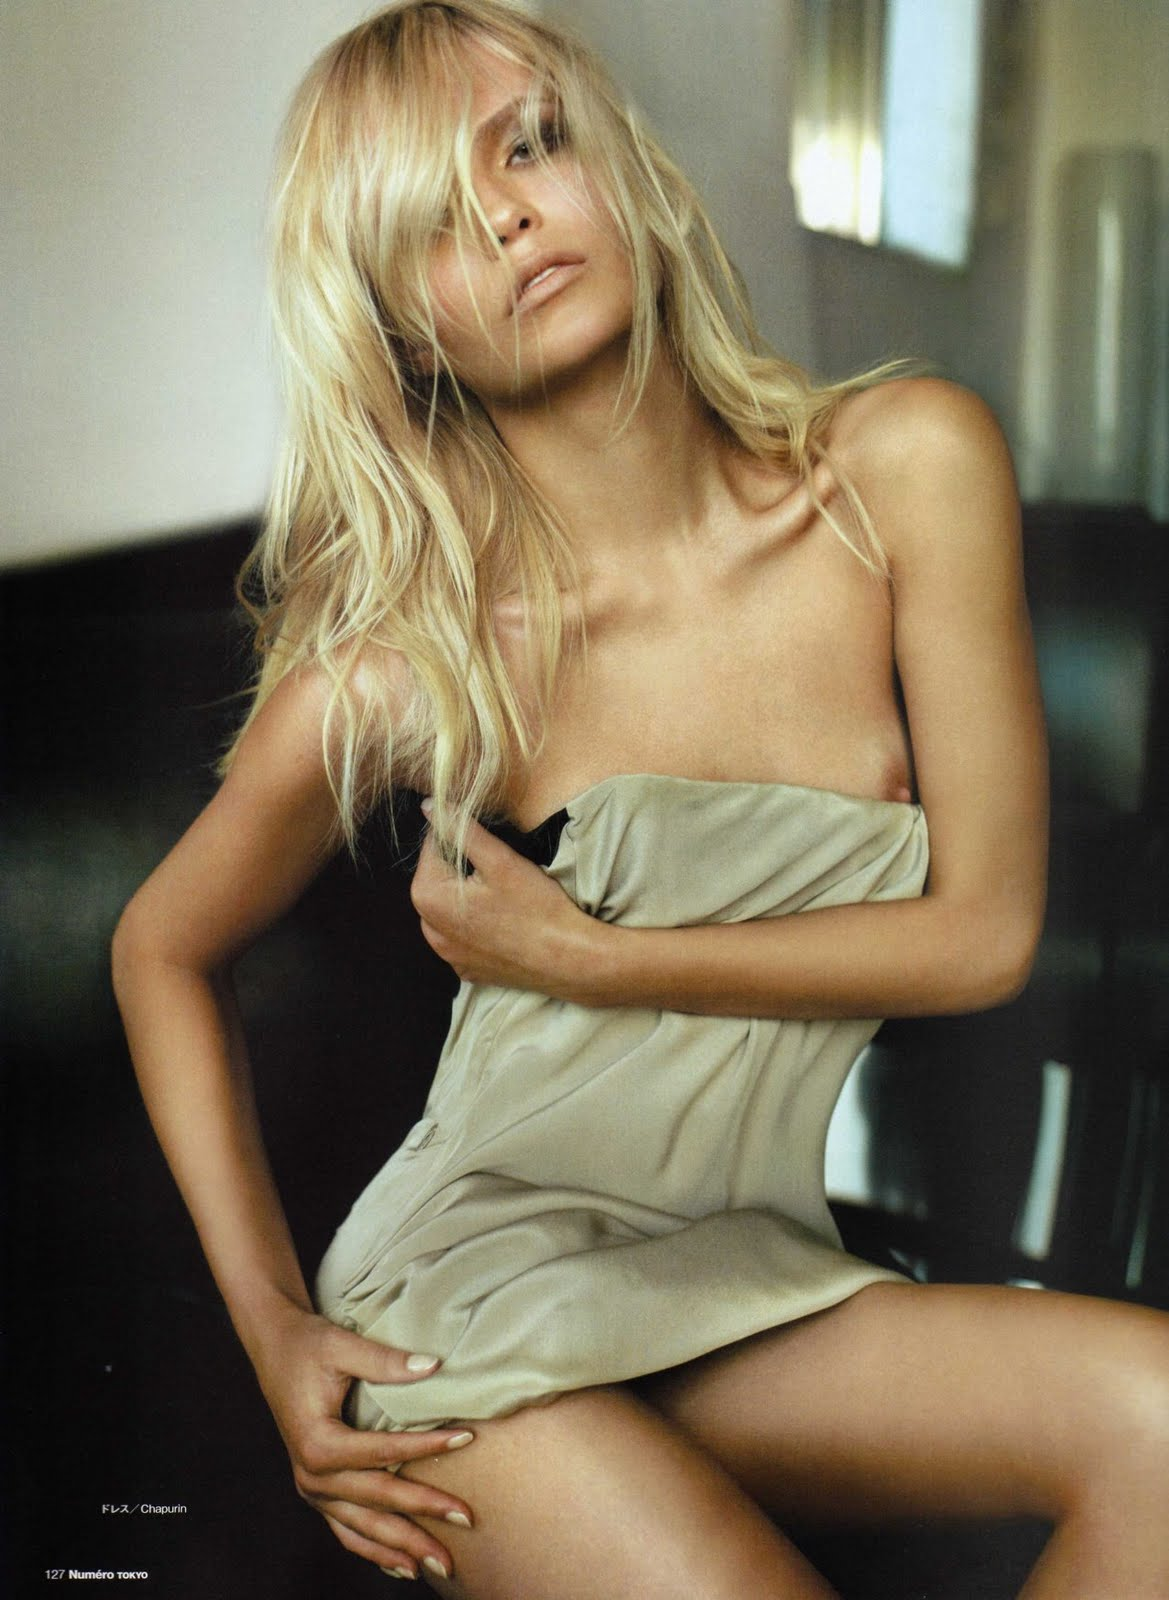 Hot Natasha Poly nudes (67 foto and video), Tits, Leaked, Twitter, cameltoe 2006